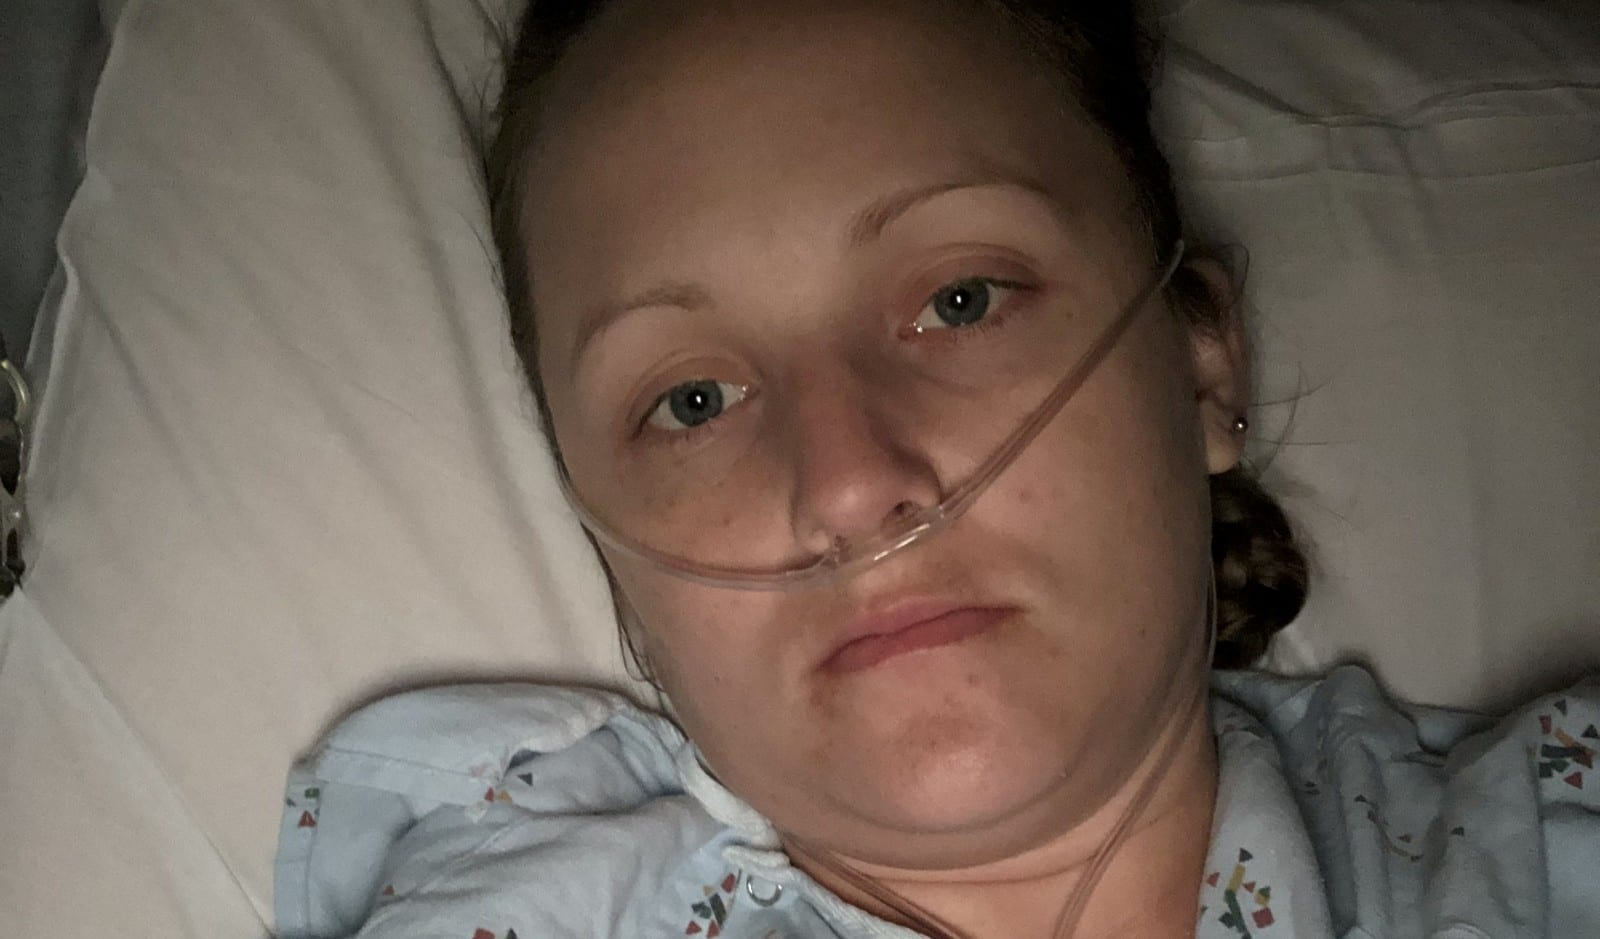 Mother Goes Into Septic Shock And Spends Four Days In Intensive Care After Developing Life-Threatening Condition From Her Tampon